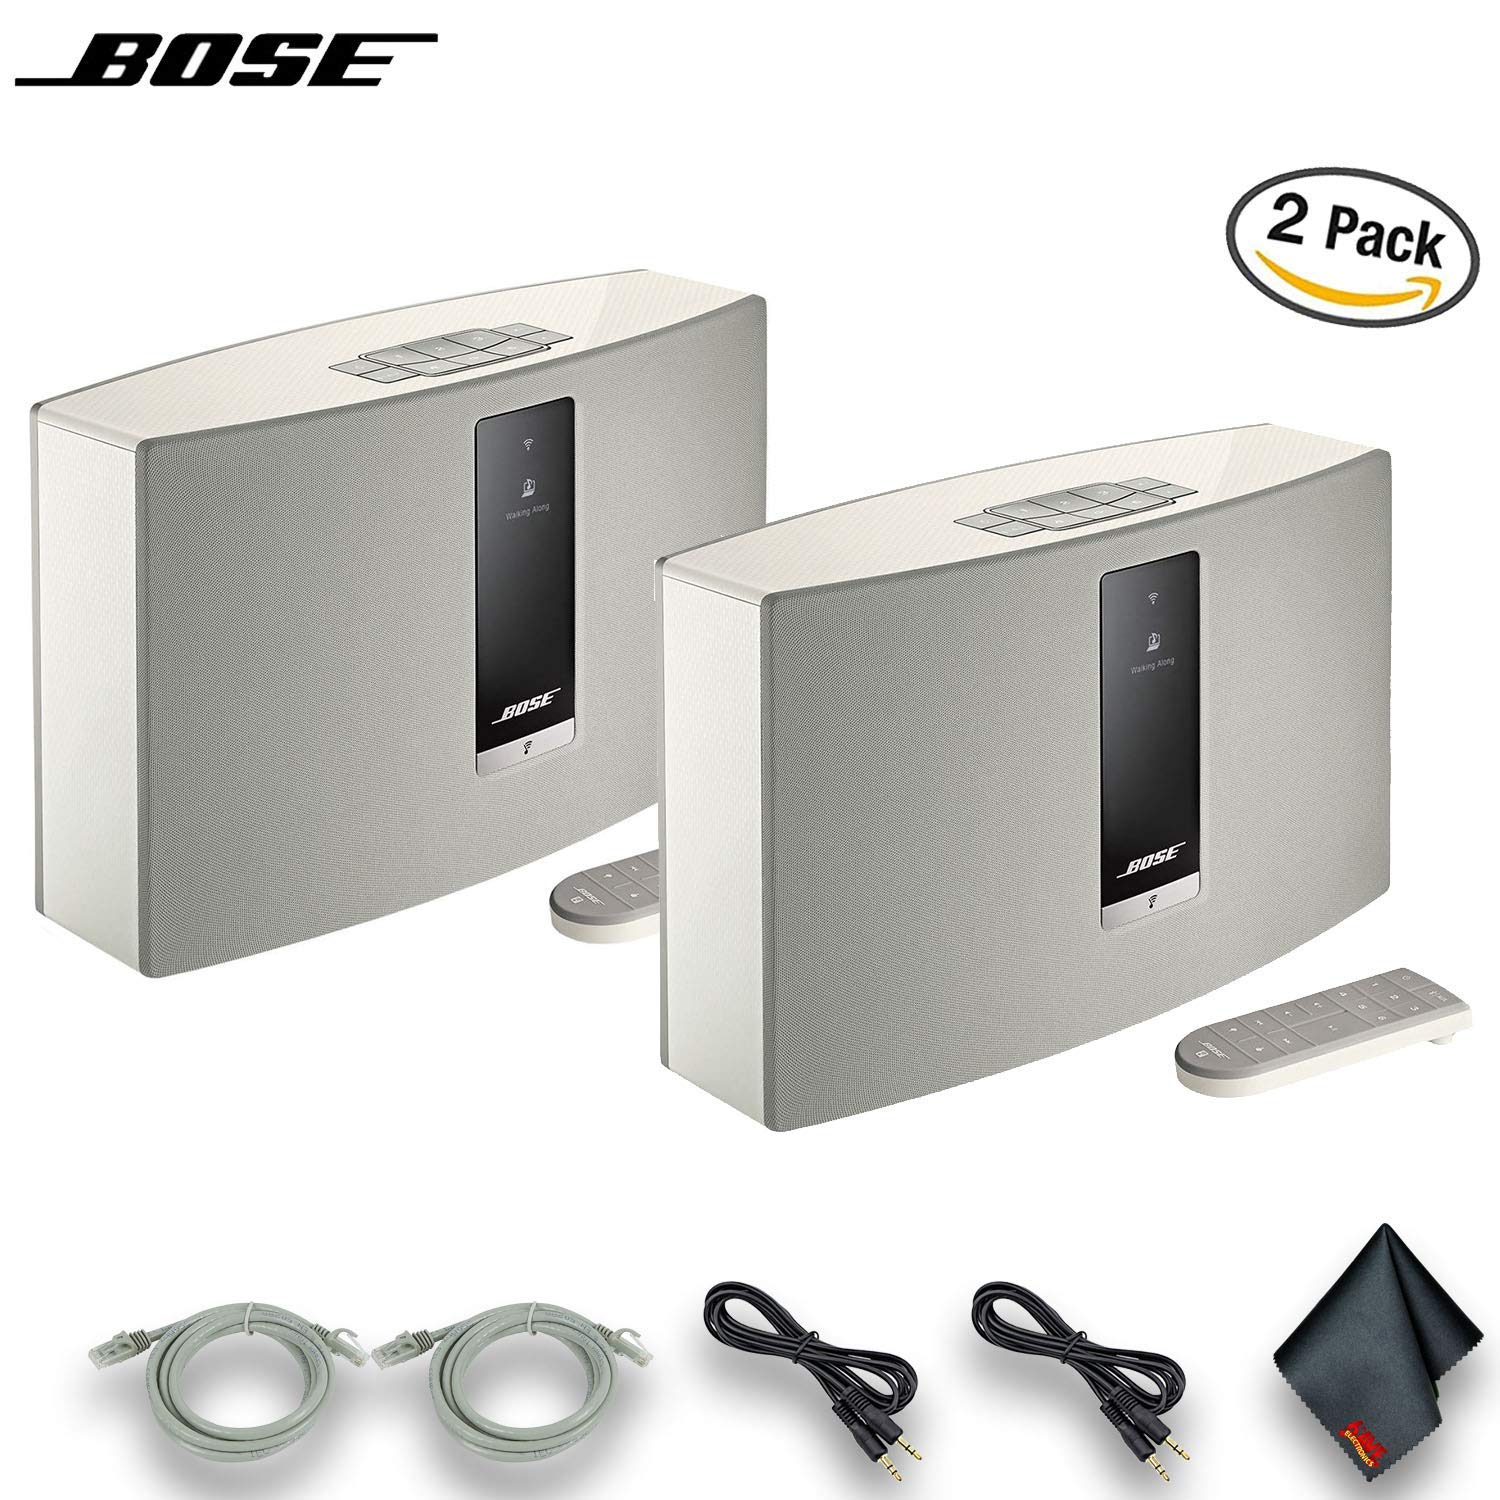 Bose SoundTouch 30 Series III Wireless Music System (White) 2 Pack, W/Network Cables, Aux Cables and More by Bose